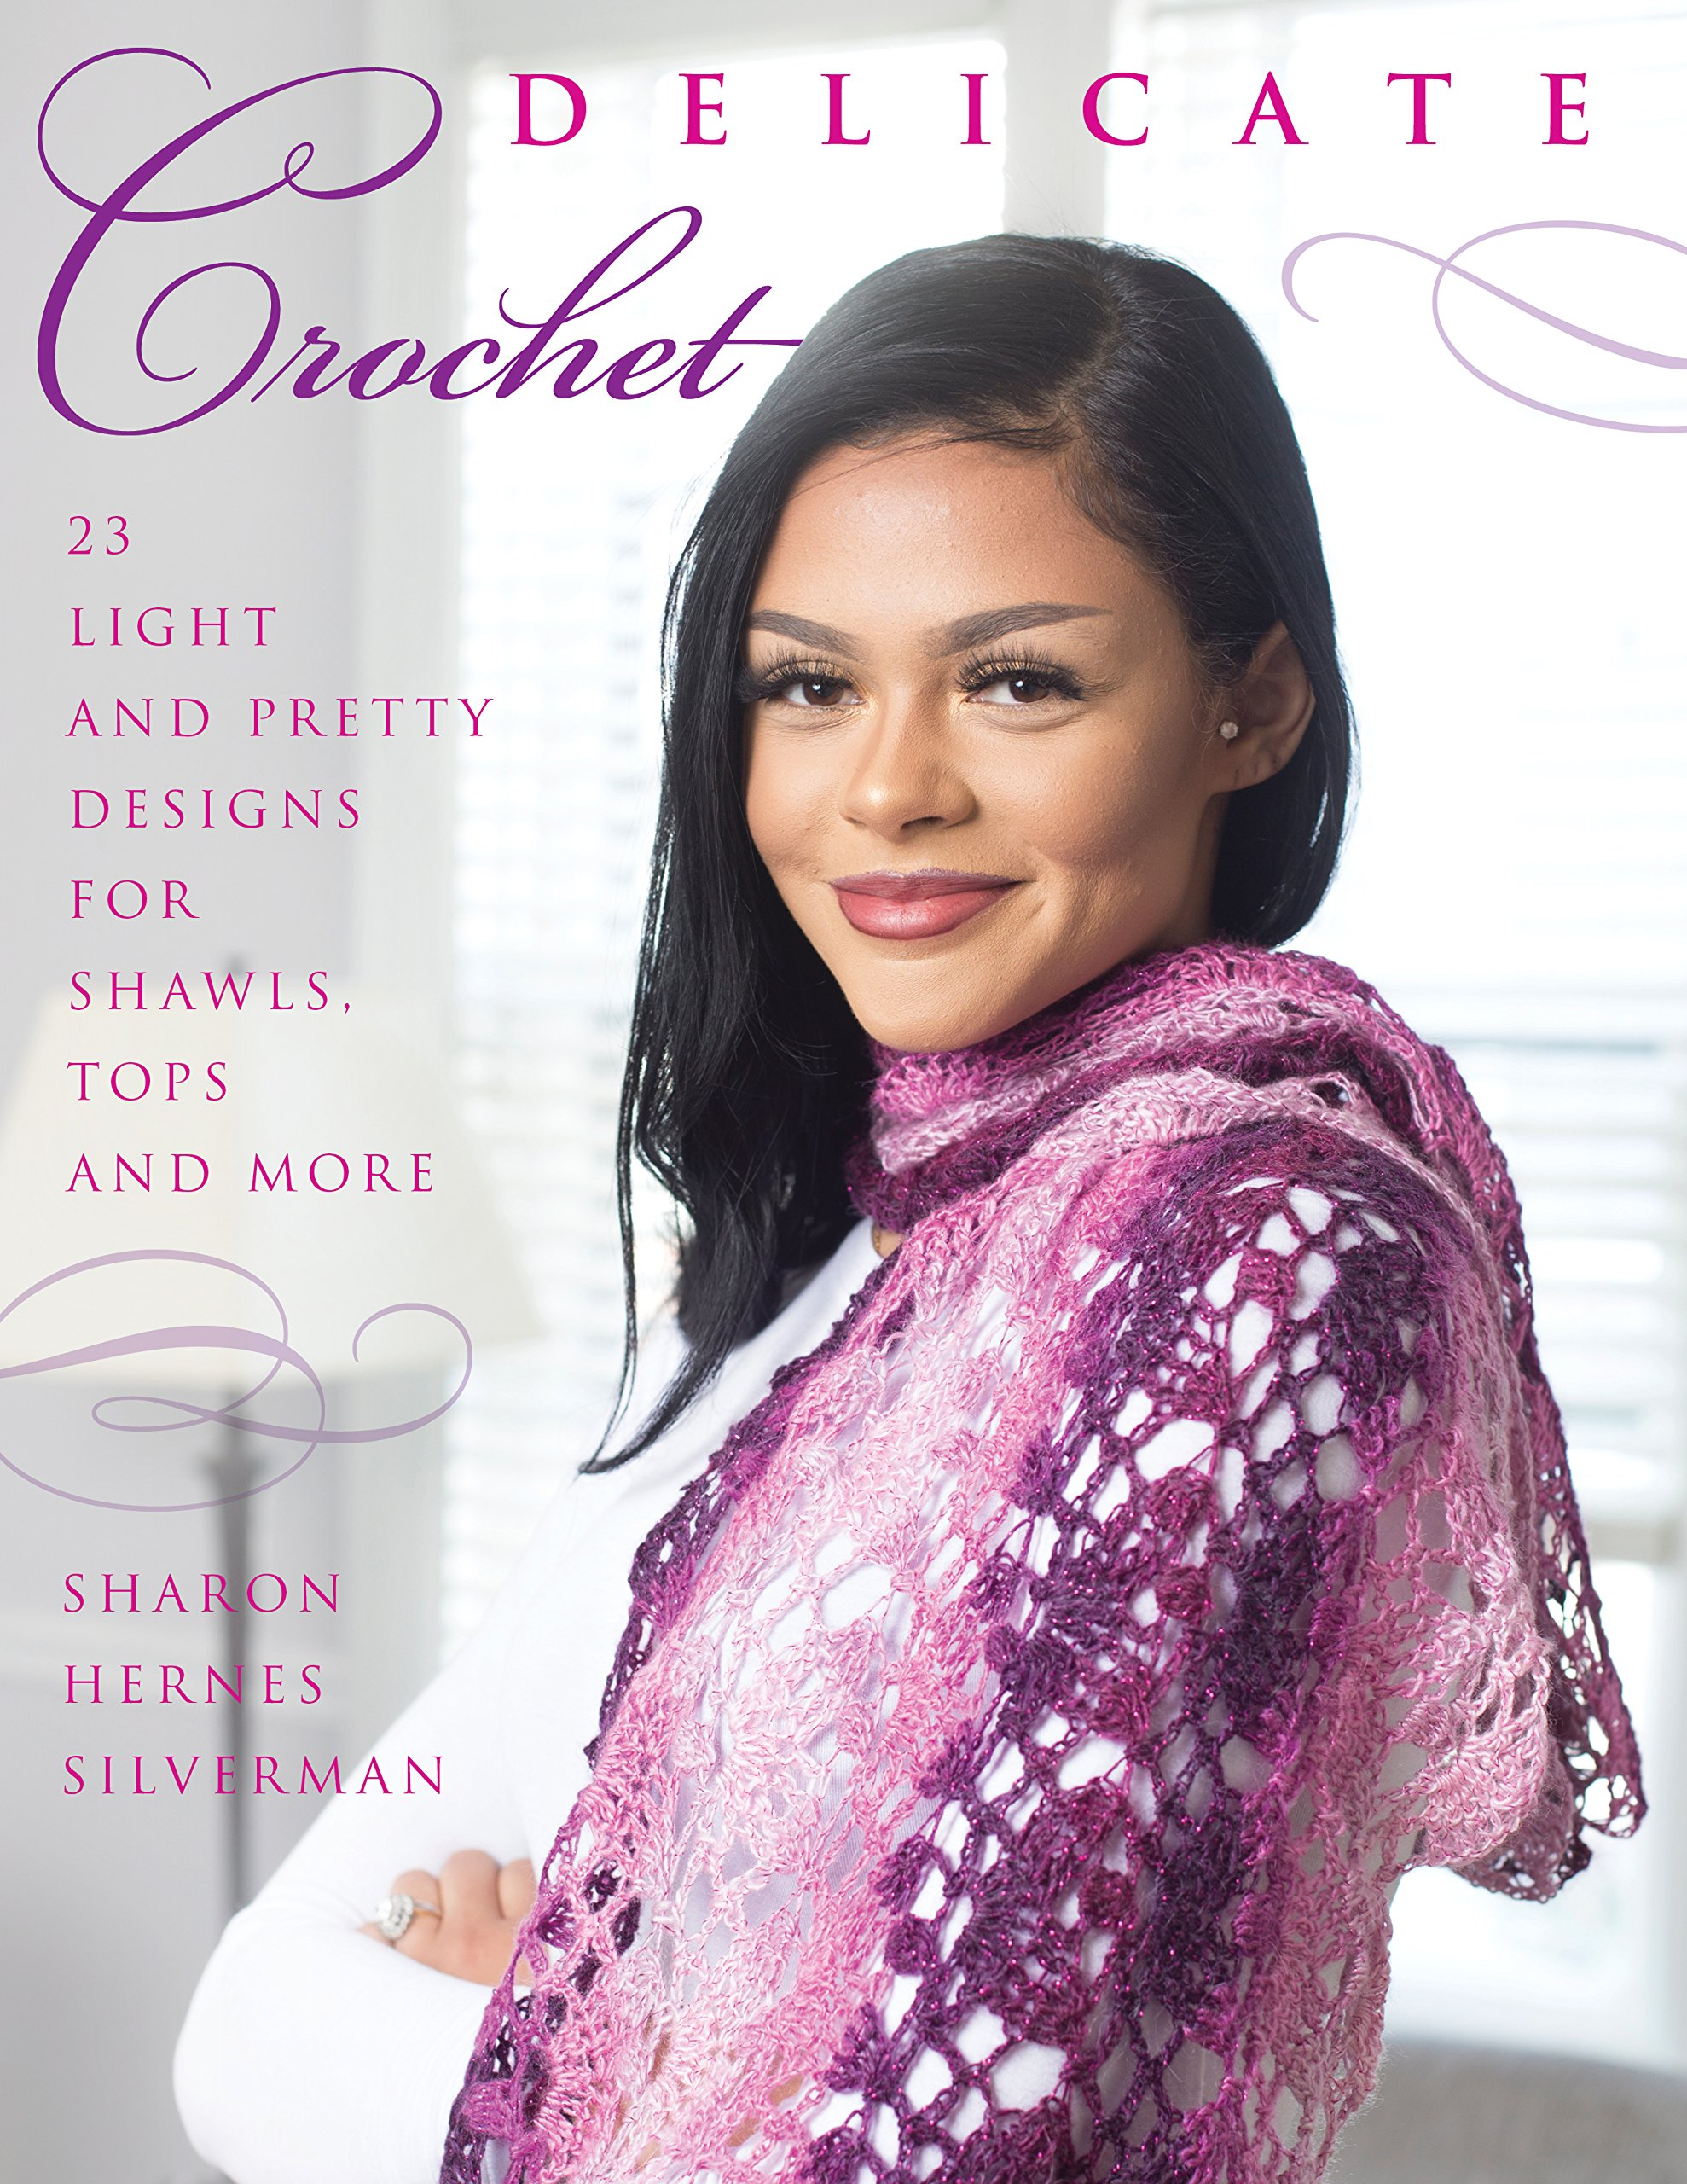 Delicate Crochet Designs for Shawls, Tops and More...